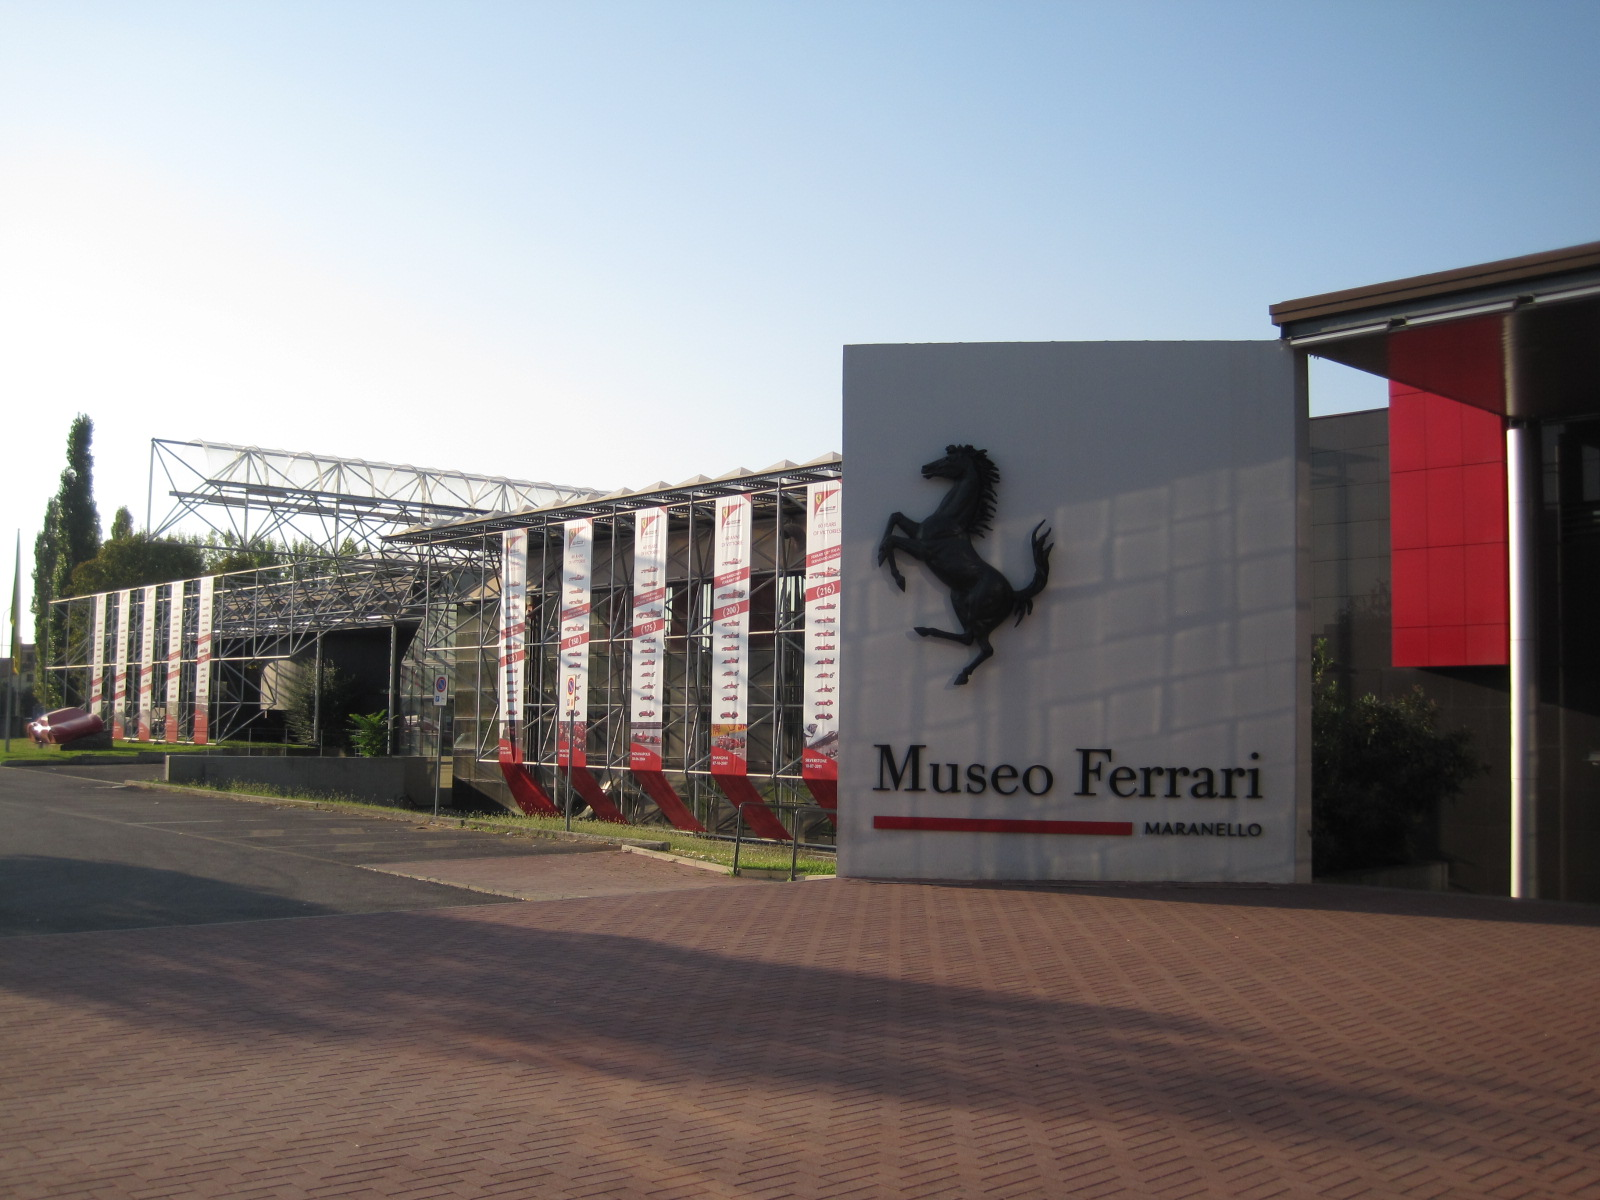 file mus e ferrari maranello 0008 jpg wikimedia commons. Black Bedroom Furniture Sets. Home Design Ideas